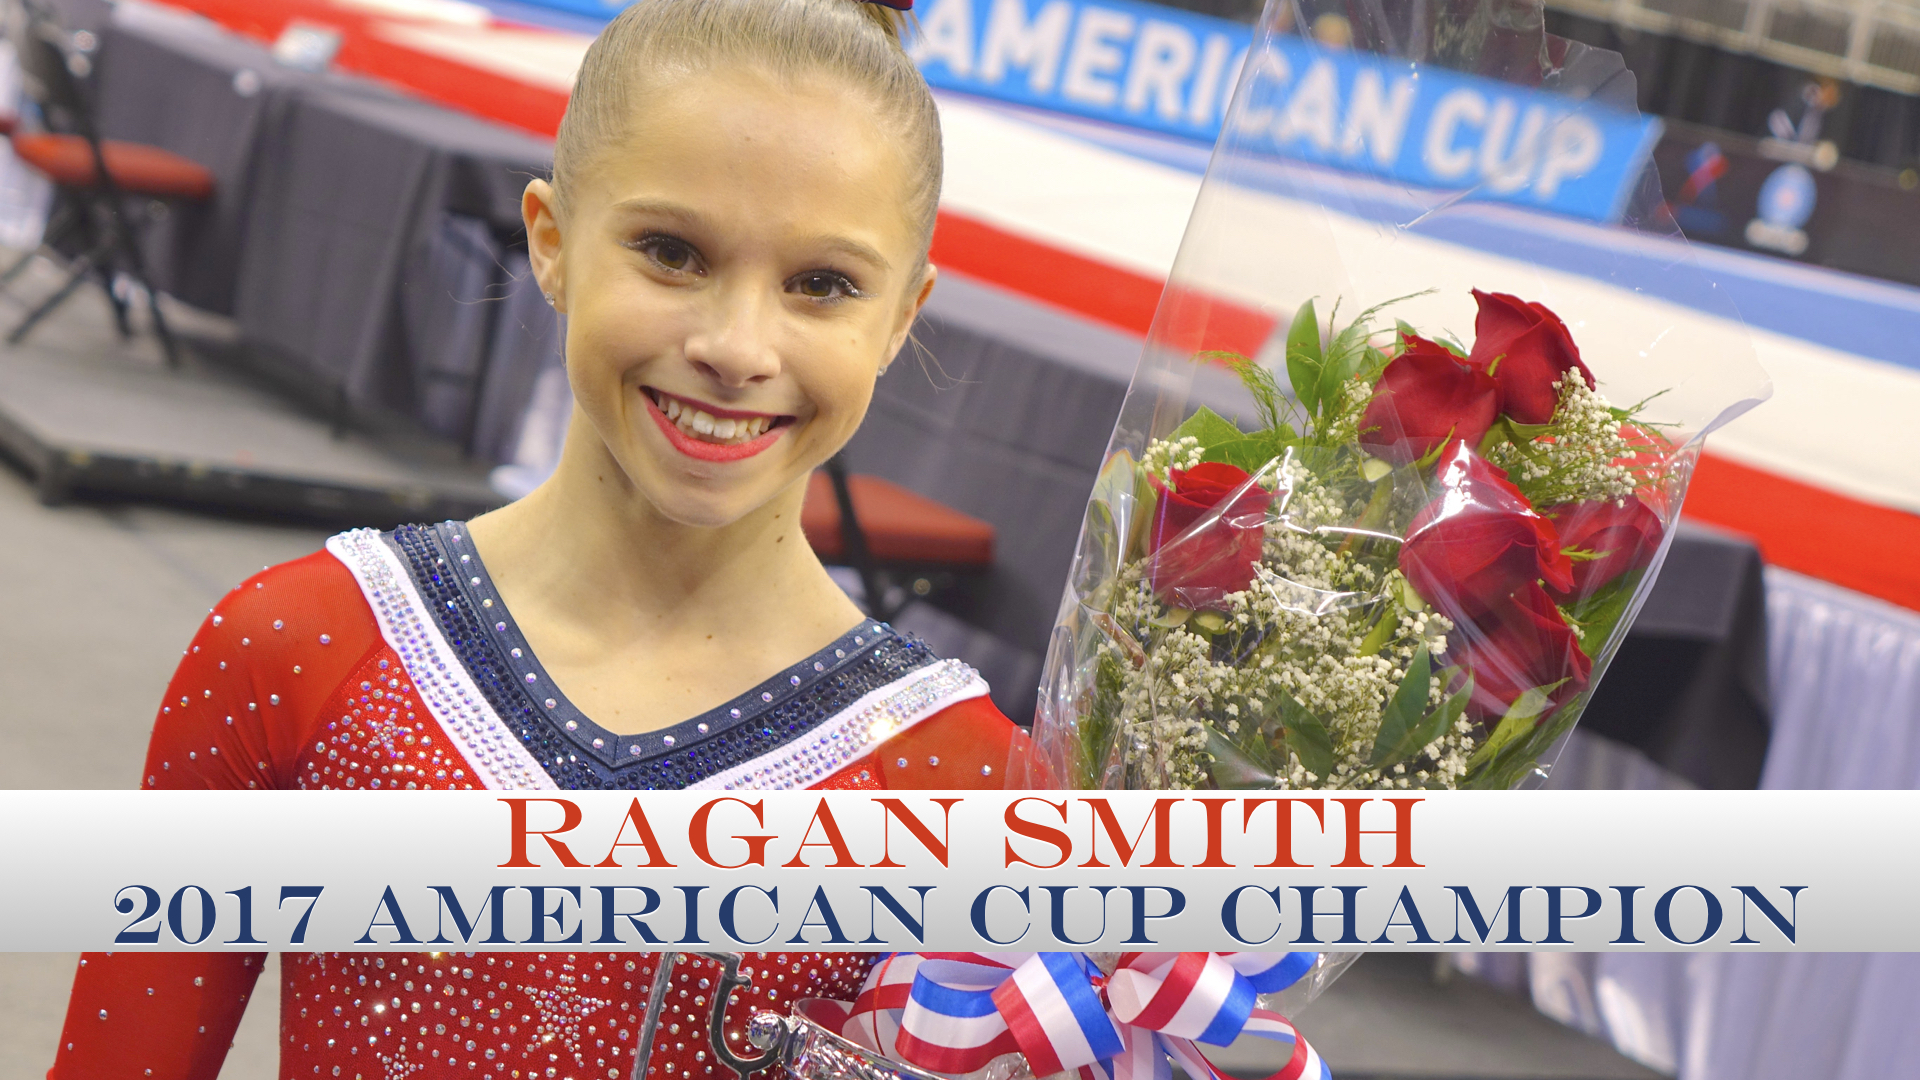 Smith wins 2017 American Cup